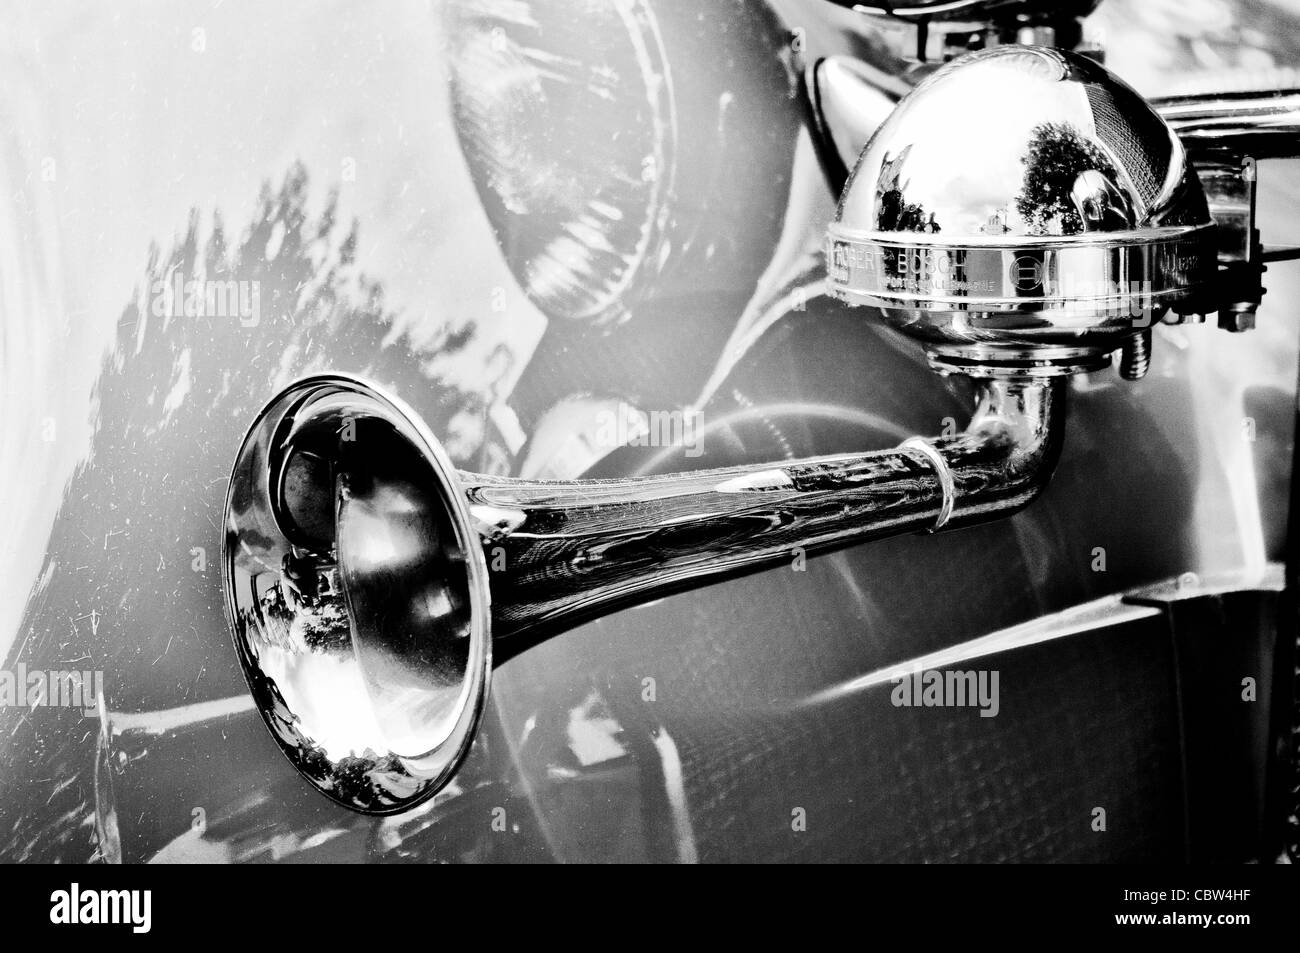 Horn of an old car - Stock Image